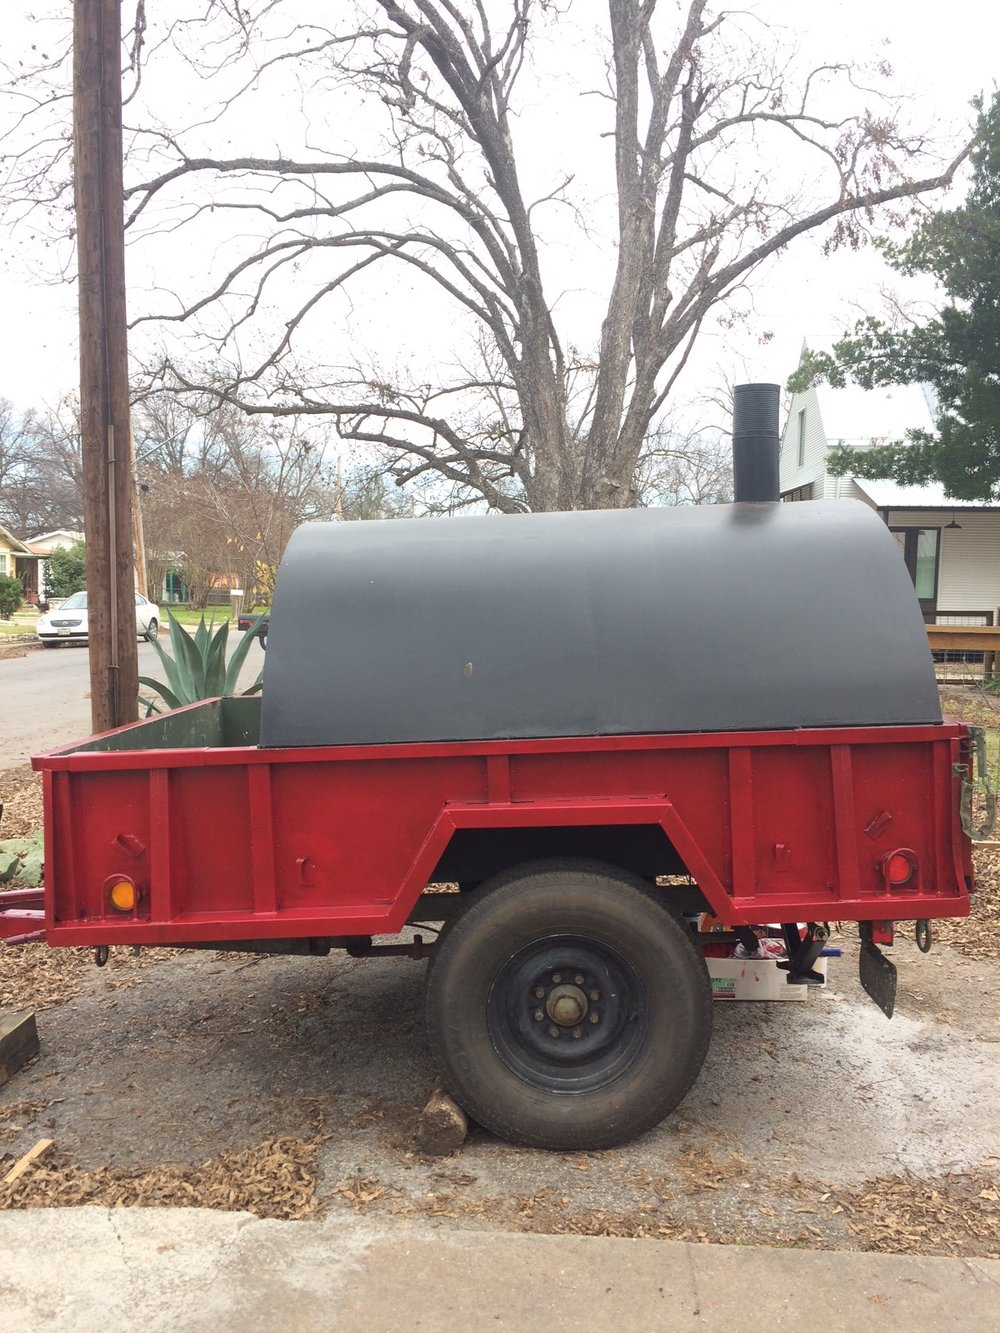 Mobile Wood Fired Pizza Trailer Oven for Sale Start a Catering Business.JPG